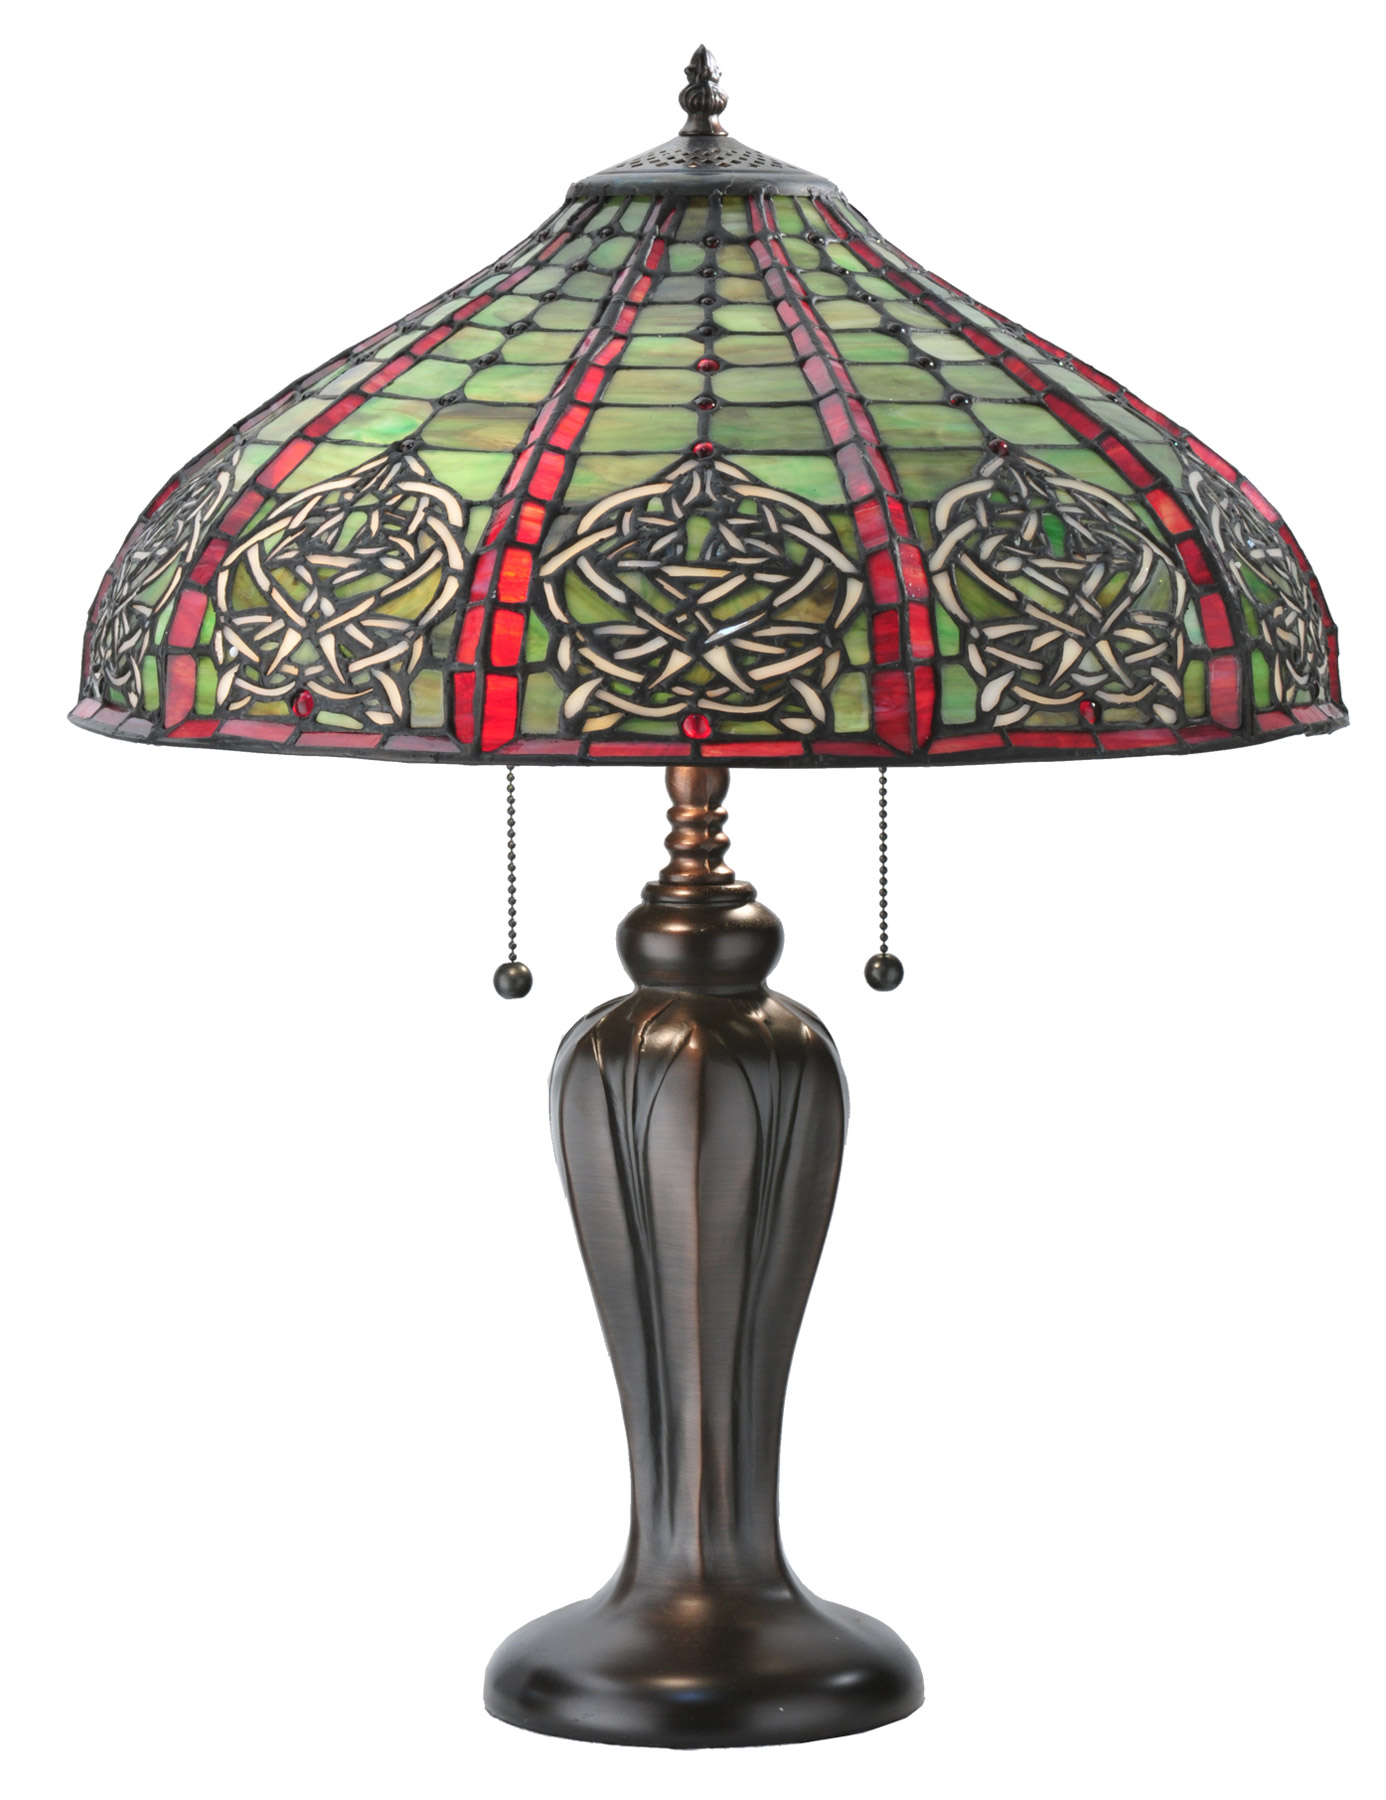 home lamps table lamps standard table lamps meyda 107804. Black Bedroom Furniture Sets. Home Design Ideas